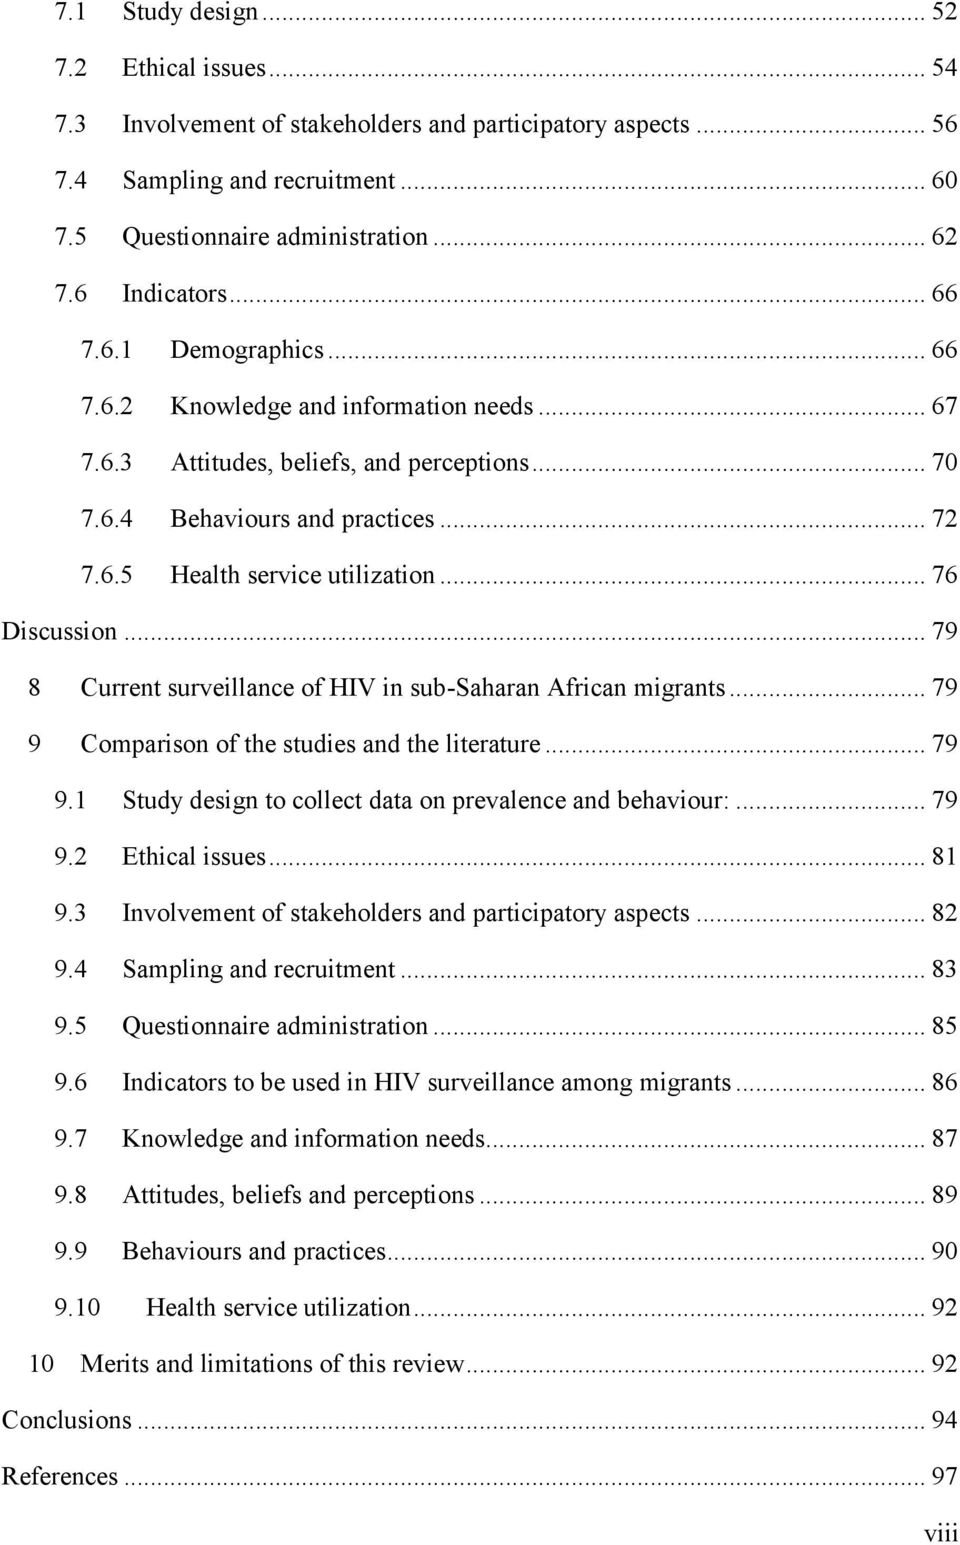 .. 76 Discussion... 79 8 Current surveillance of HIV in sub-saharan African migrants... 79 9 Comparison of the studies and the literature... 79 9.1 Study design to collect data on prevalence and behaviour:.